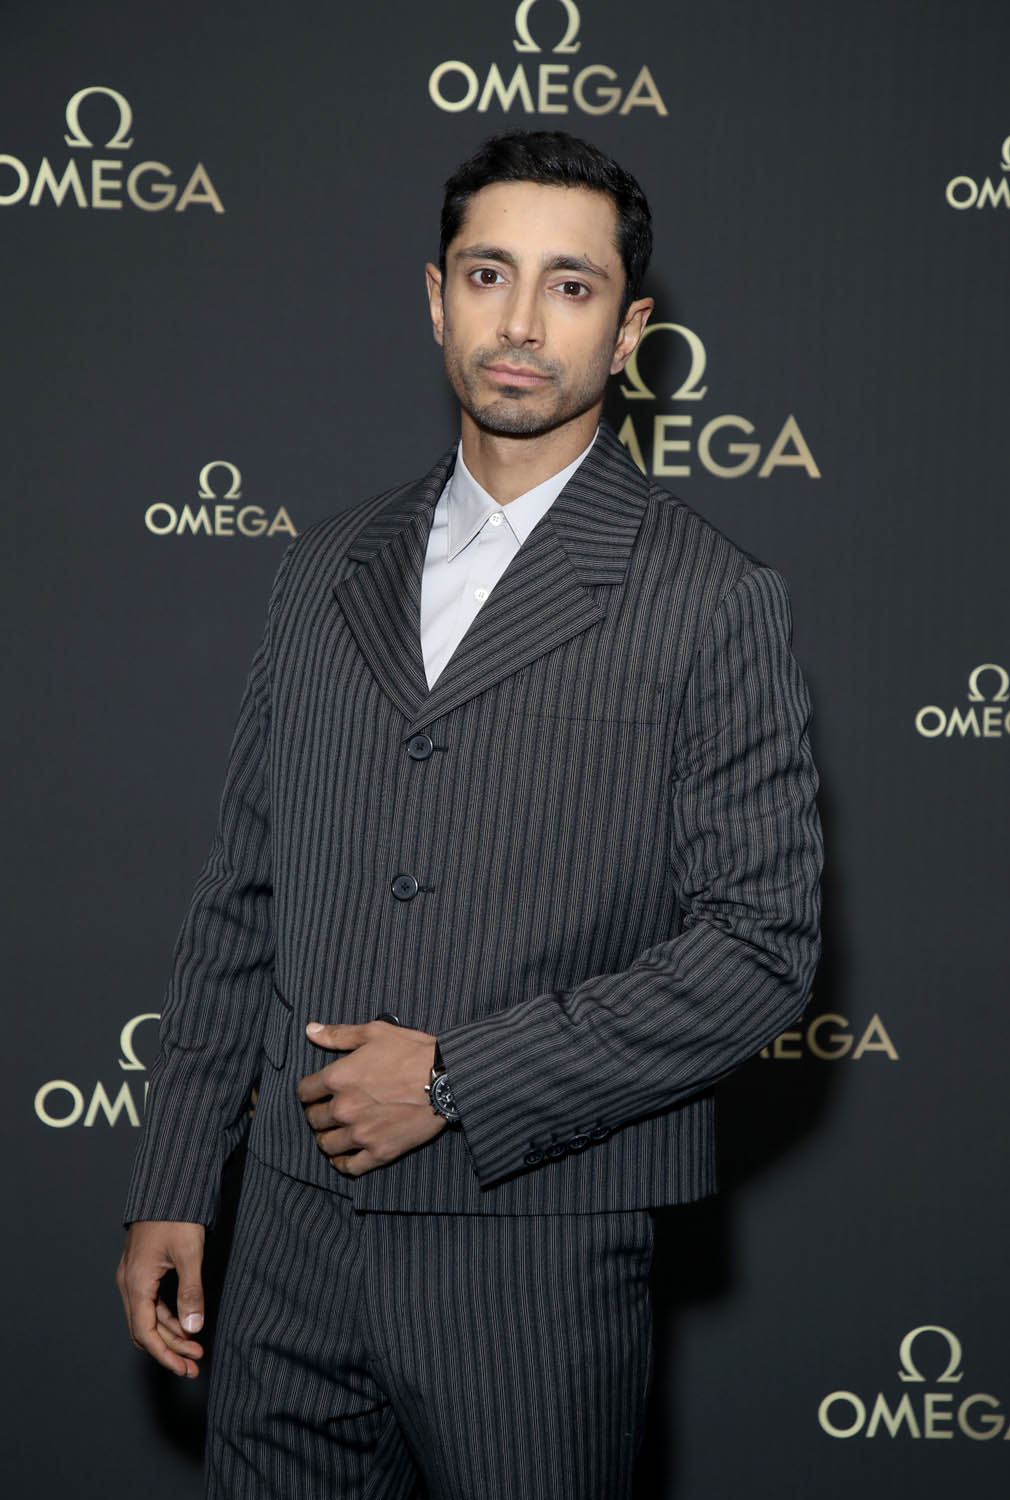 LONDON, ENGLAND - JULY 11: Riz Ahmed attends the OMEGA 50th anniversary Moon Landing dinner at Television Centre on July 11, 2019 in London, England. (Photo by Mike Marsland/Getty Images for OMEGA)